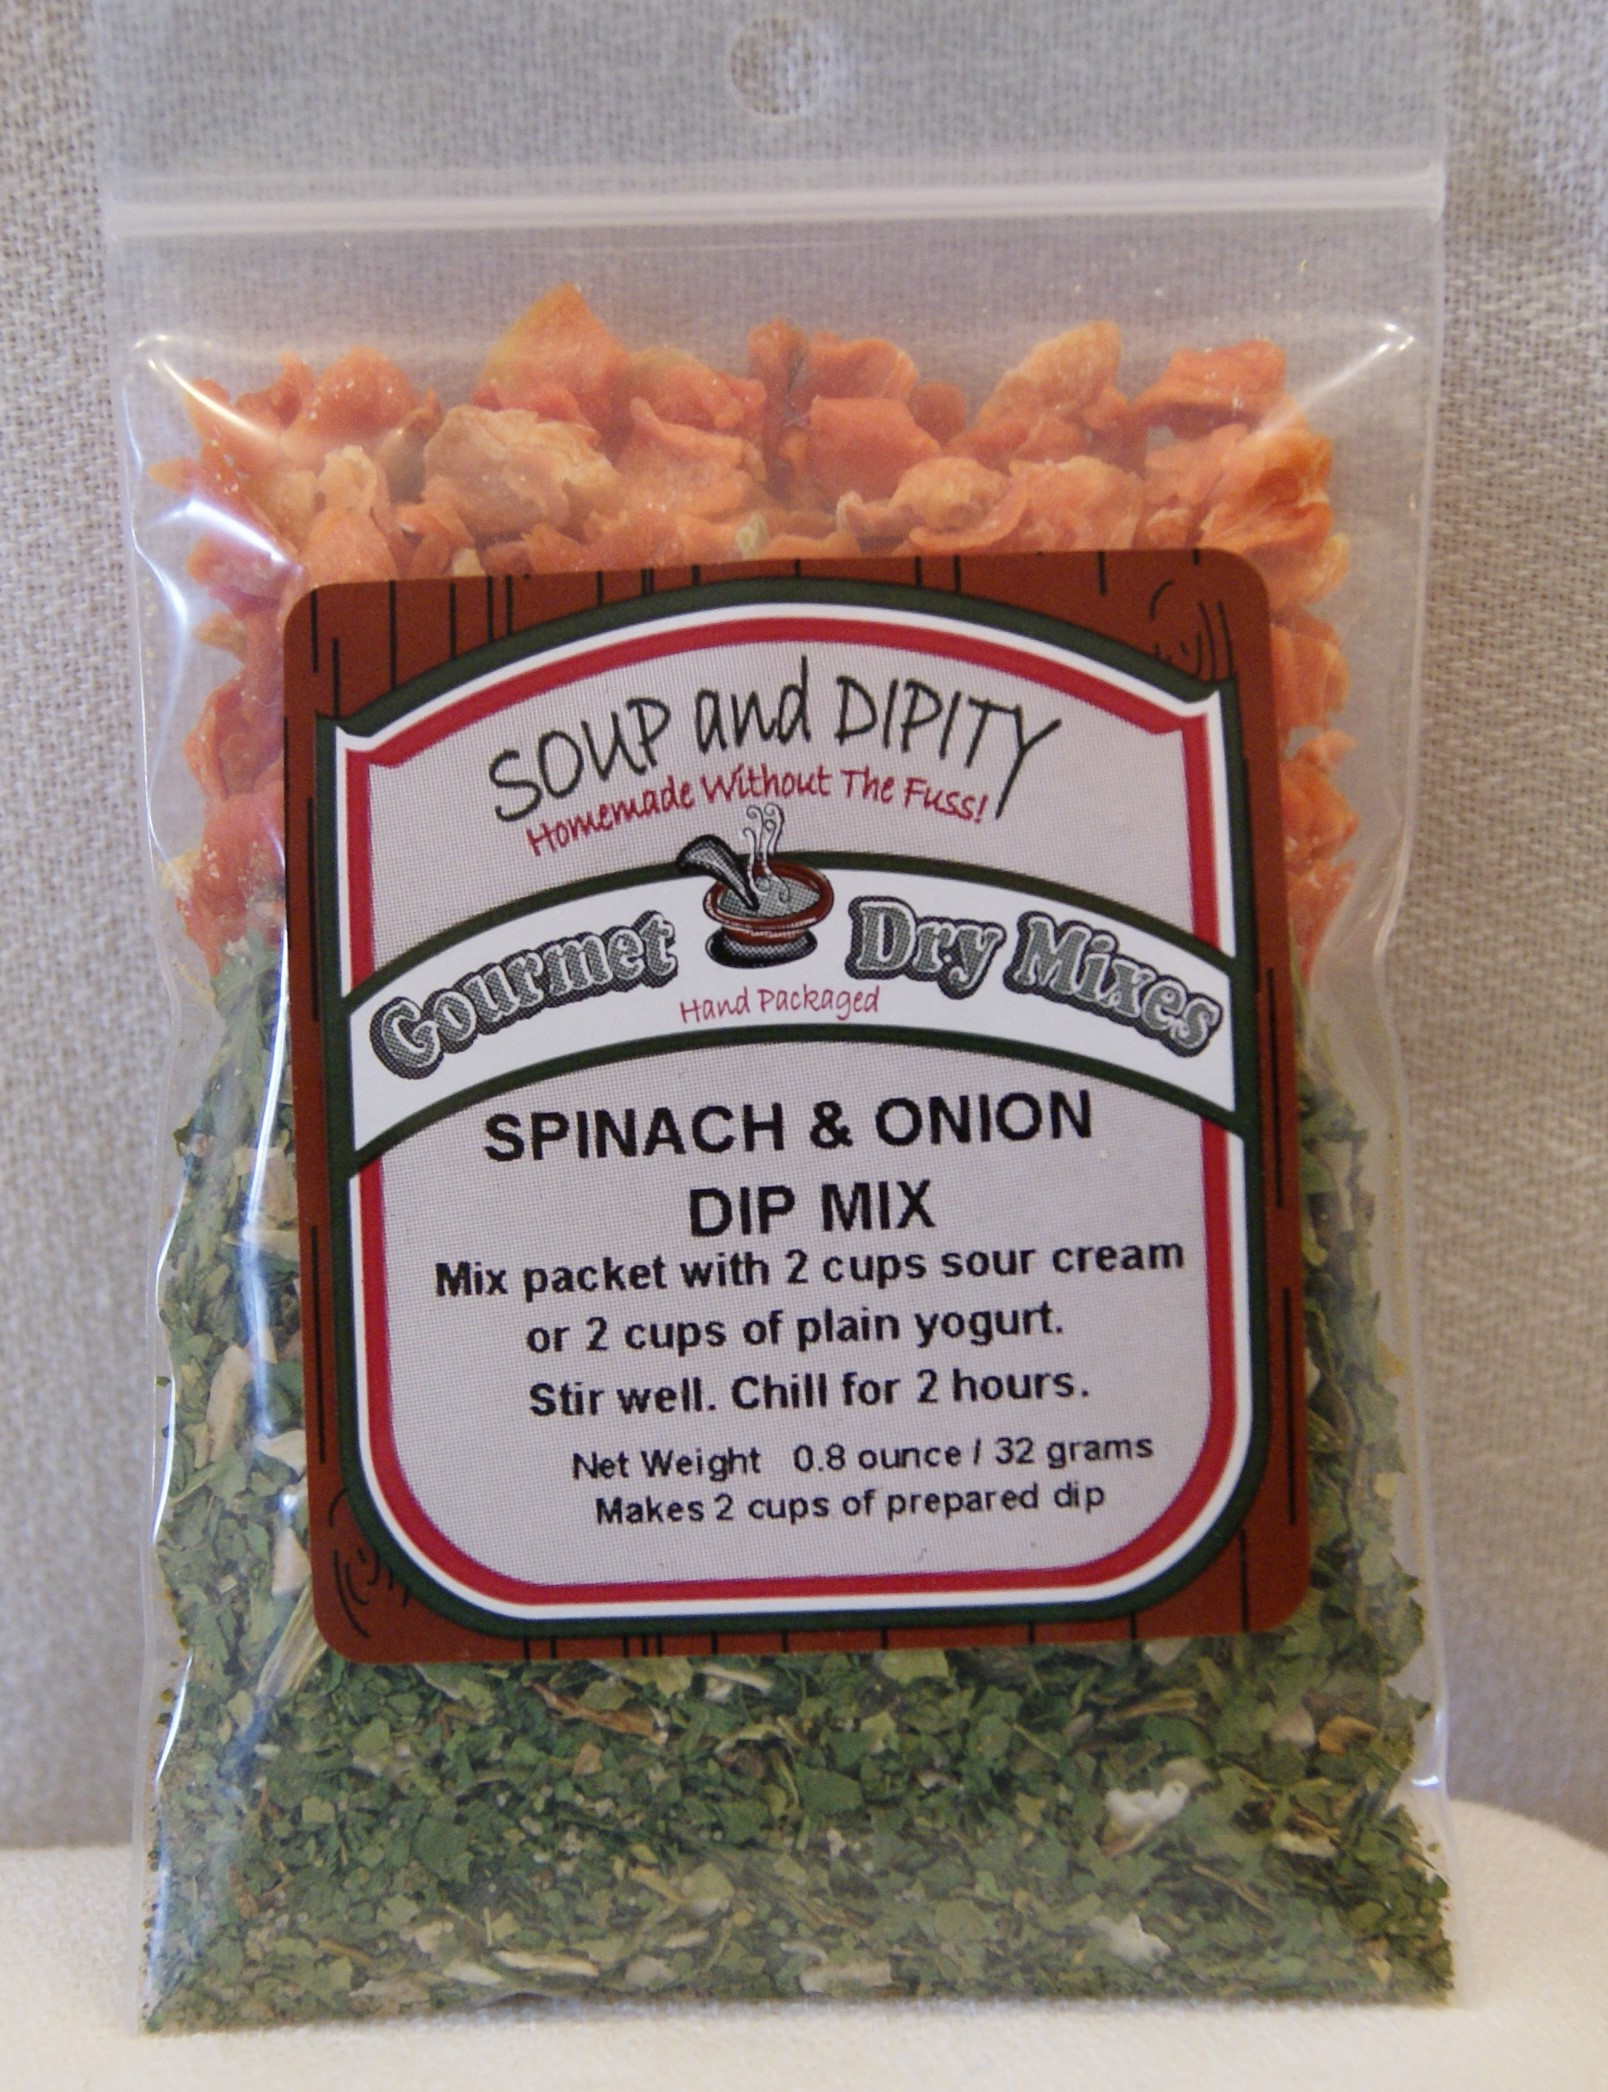 Spinach & Onion Dip Mix